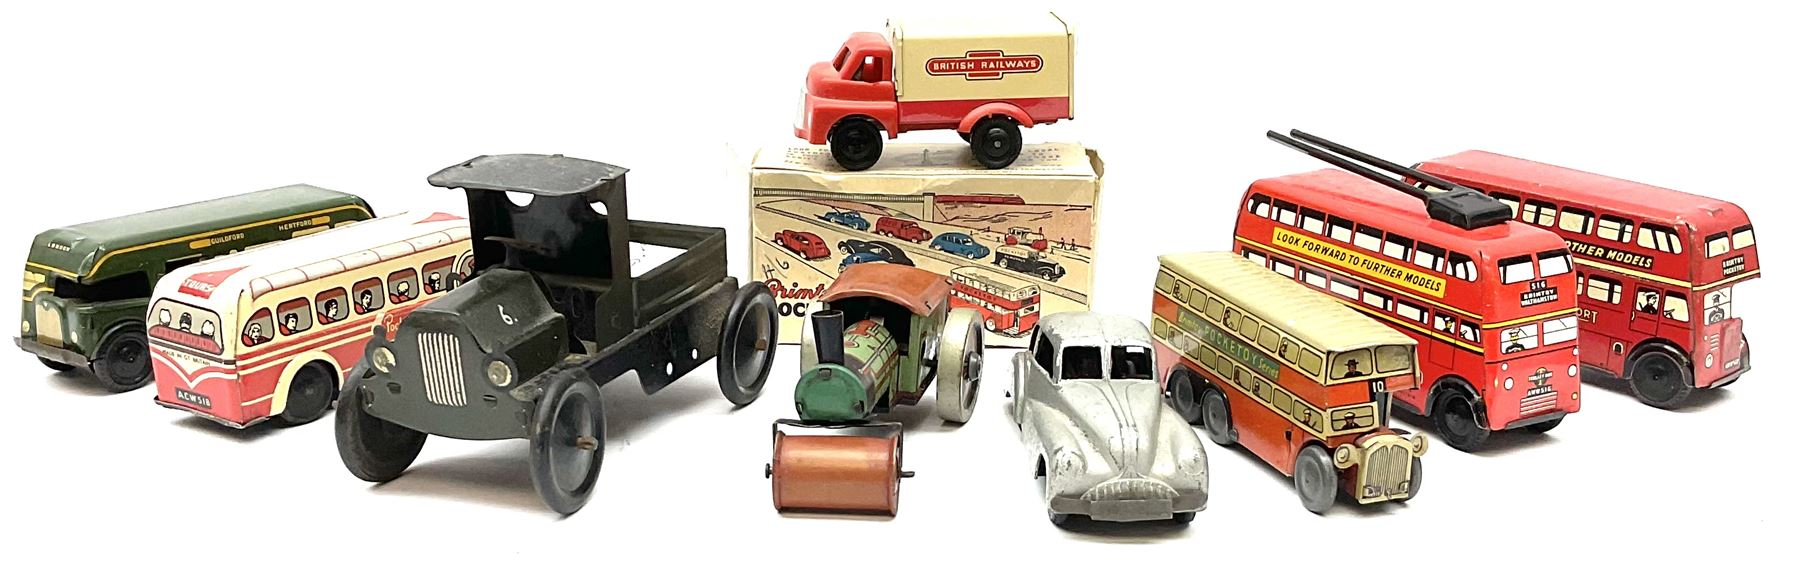 Wells Brimtoy/Pocketoy - eight tin-plate/clockwork or friction-drive vehicles comprising London Trol